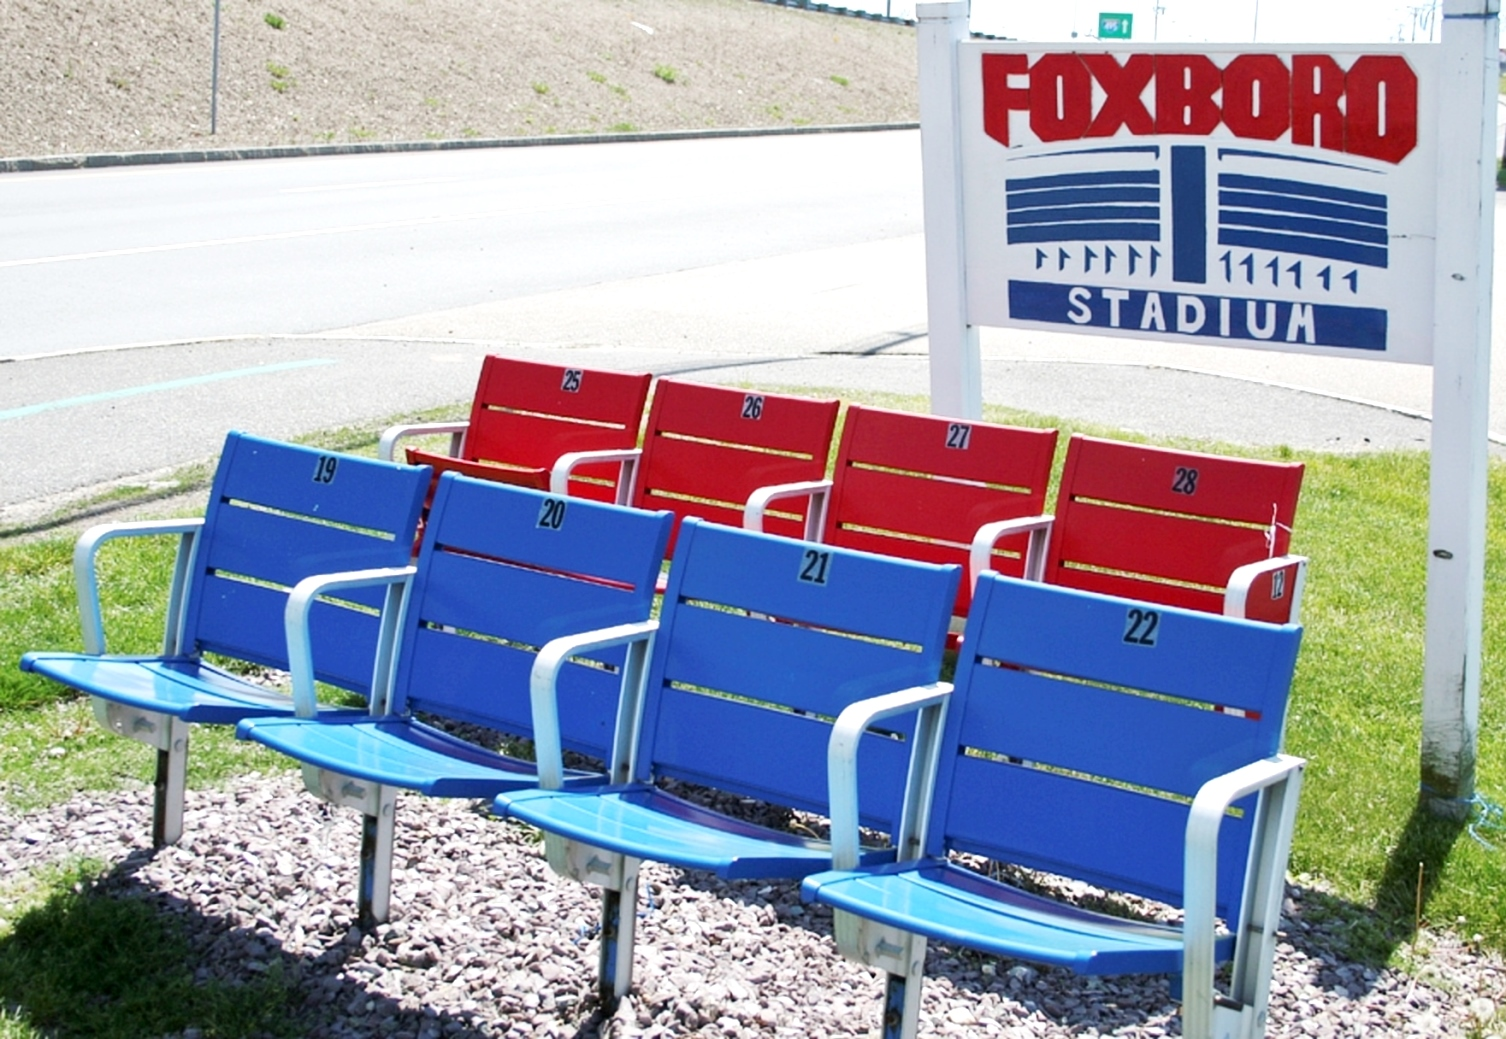 22-greetingsfoxboro-seats-from-original-foxboro-stadium.v1.jpg